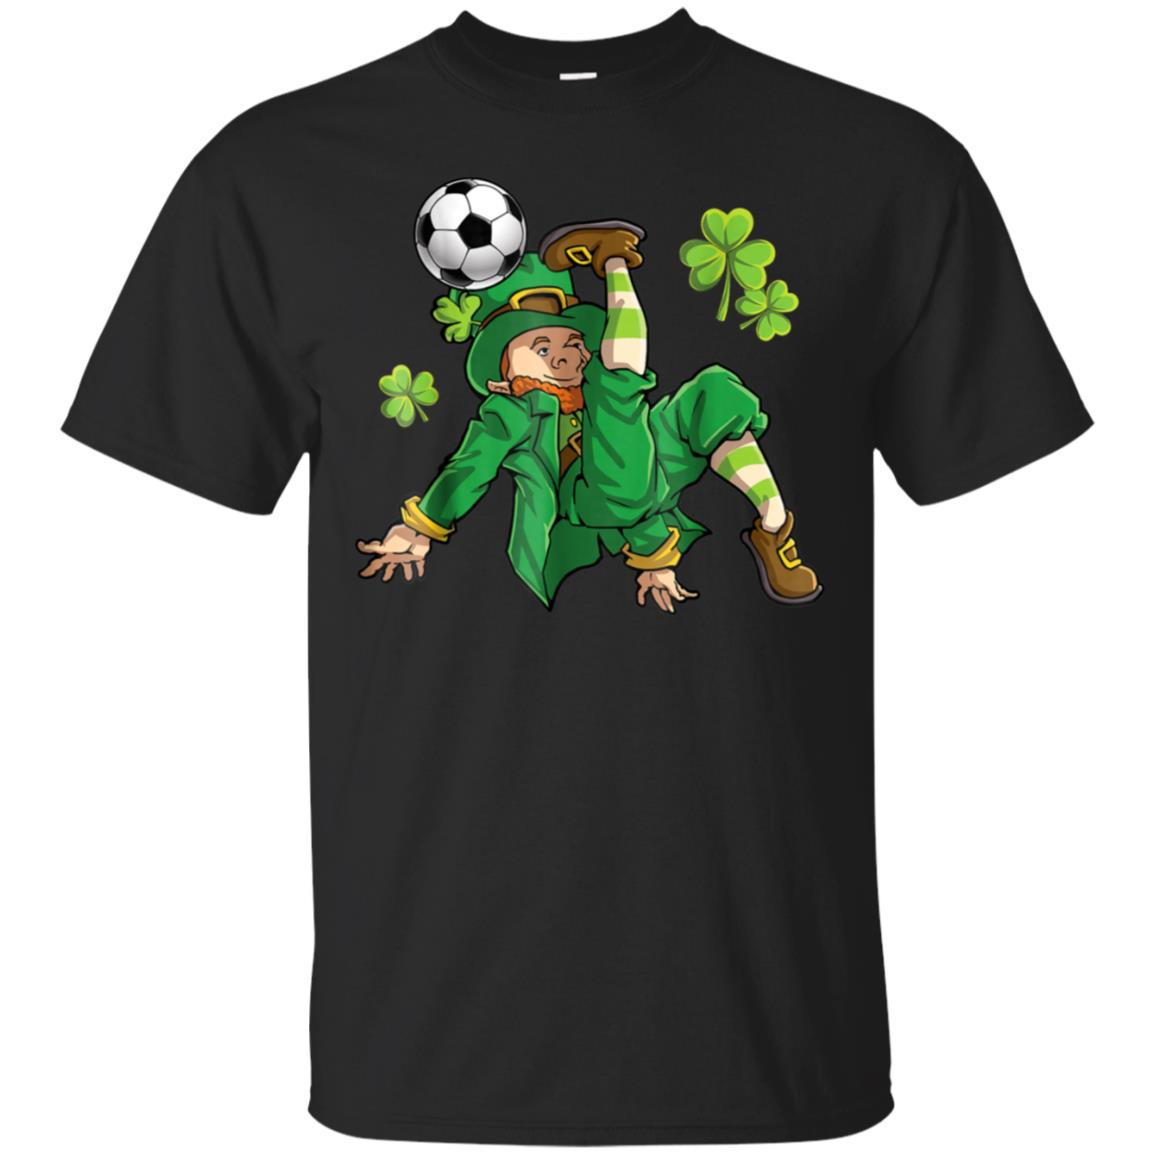 Leprechaun Soccer T Shirt St Patricks Day Boys Kids Women 99promocode